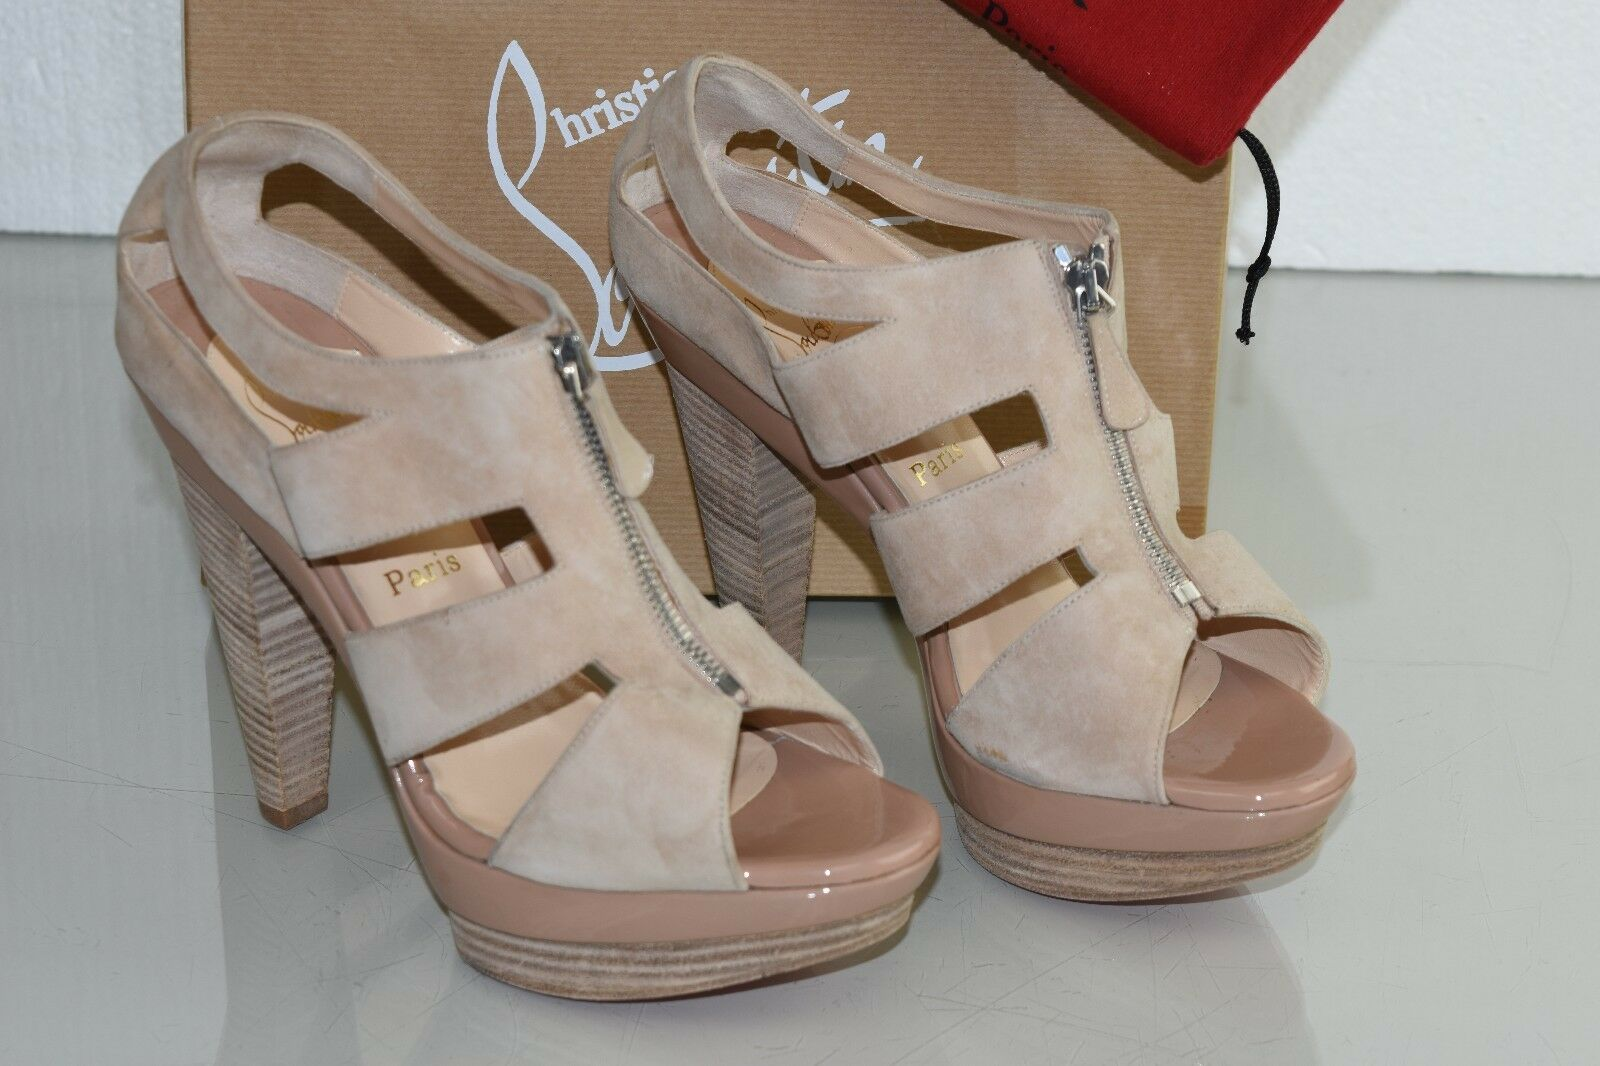 NEW NEW NEW Christian Louboutin ZIPETTE Suede NUDE Patent Platform Cut Out shoes 42 115ebb